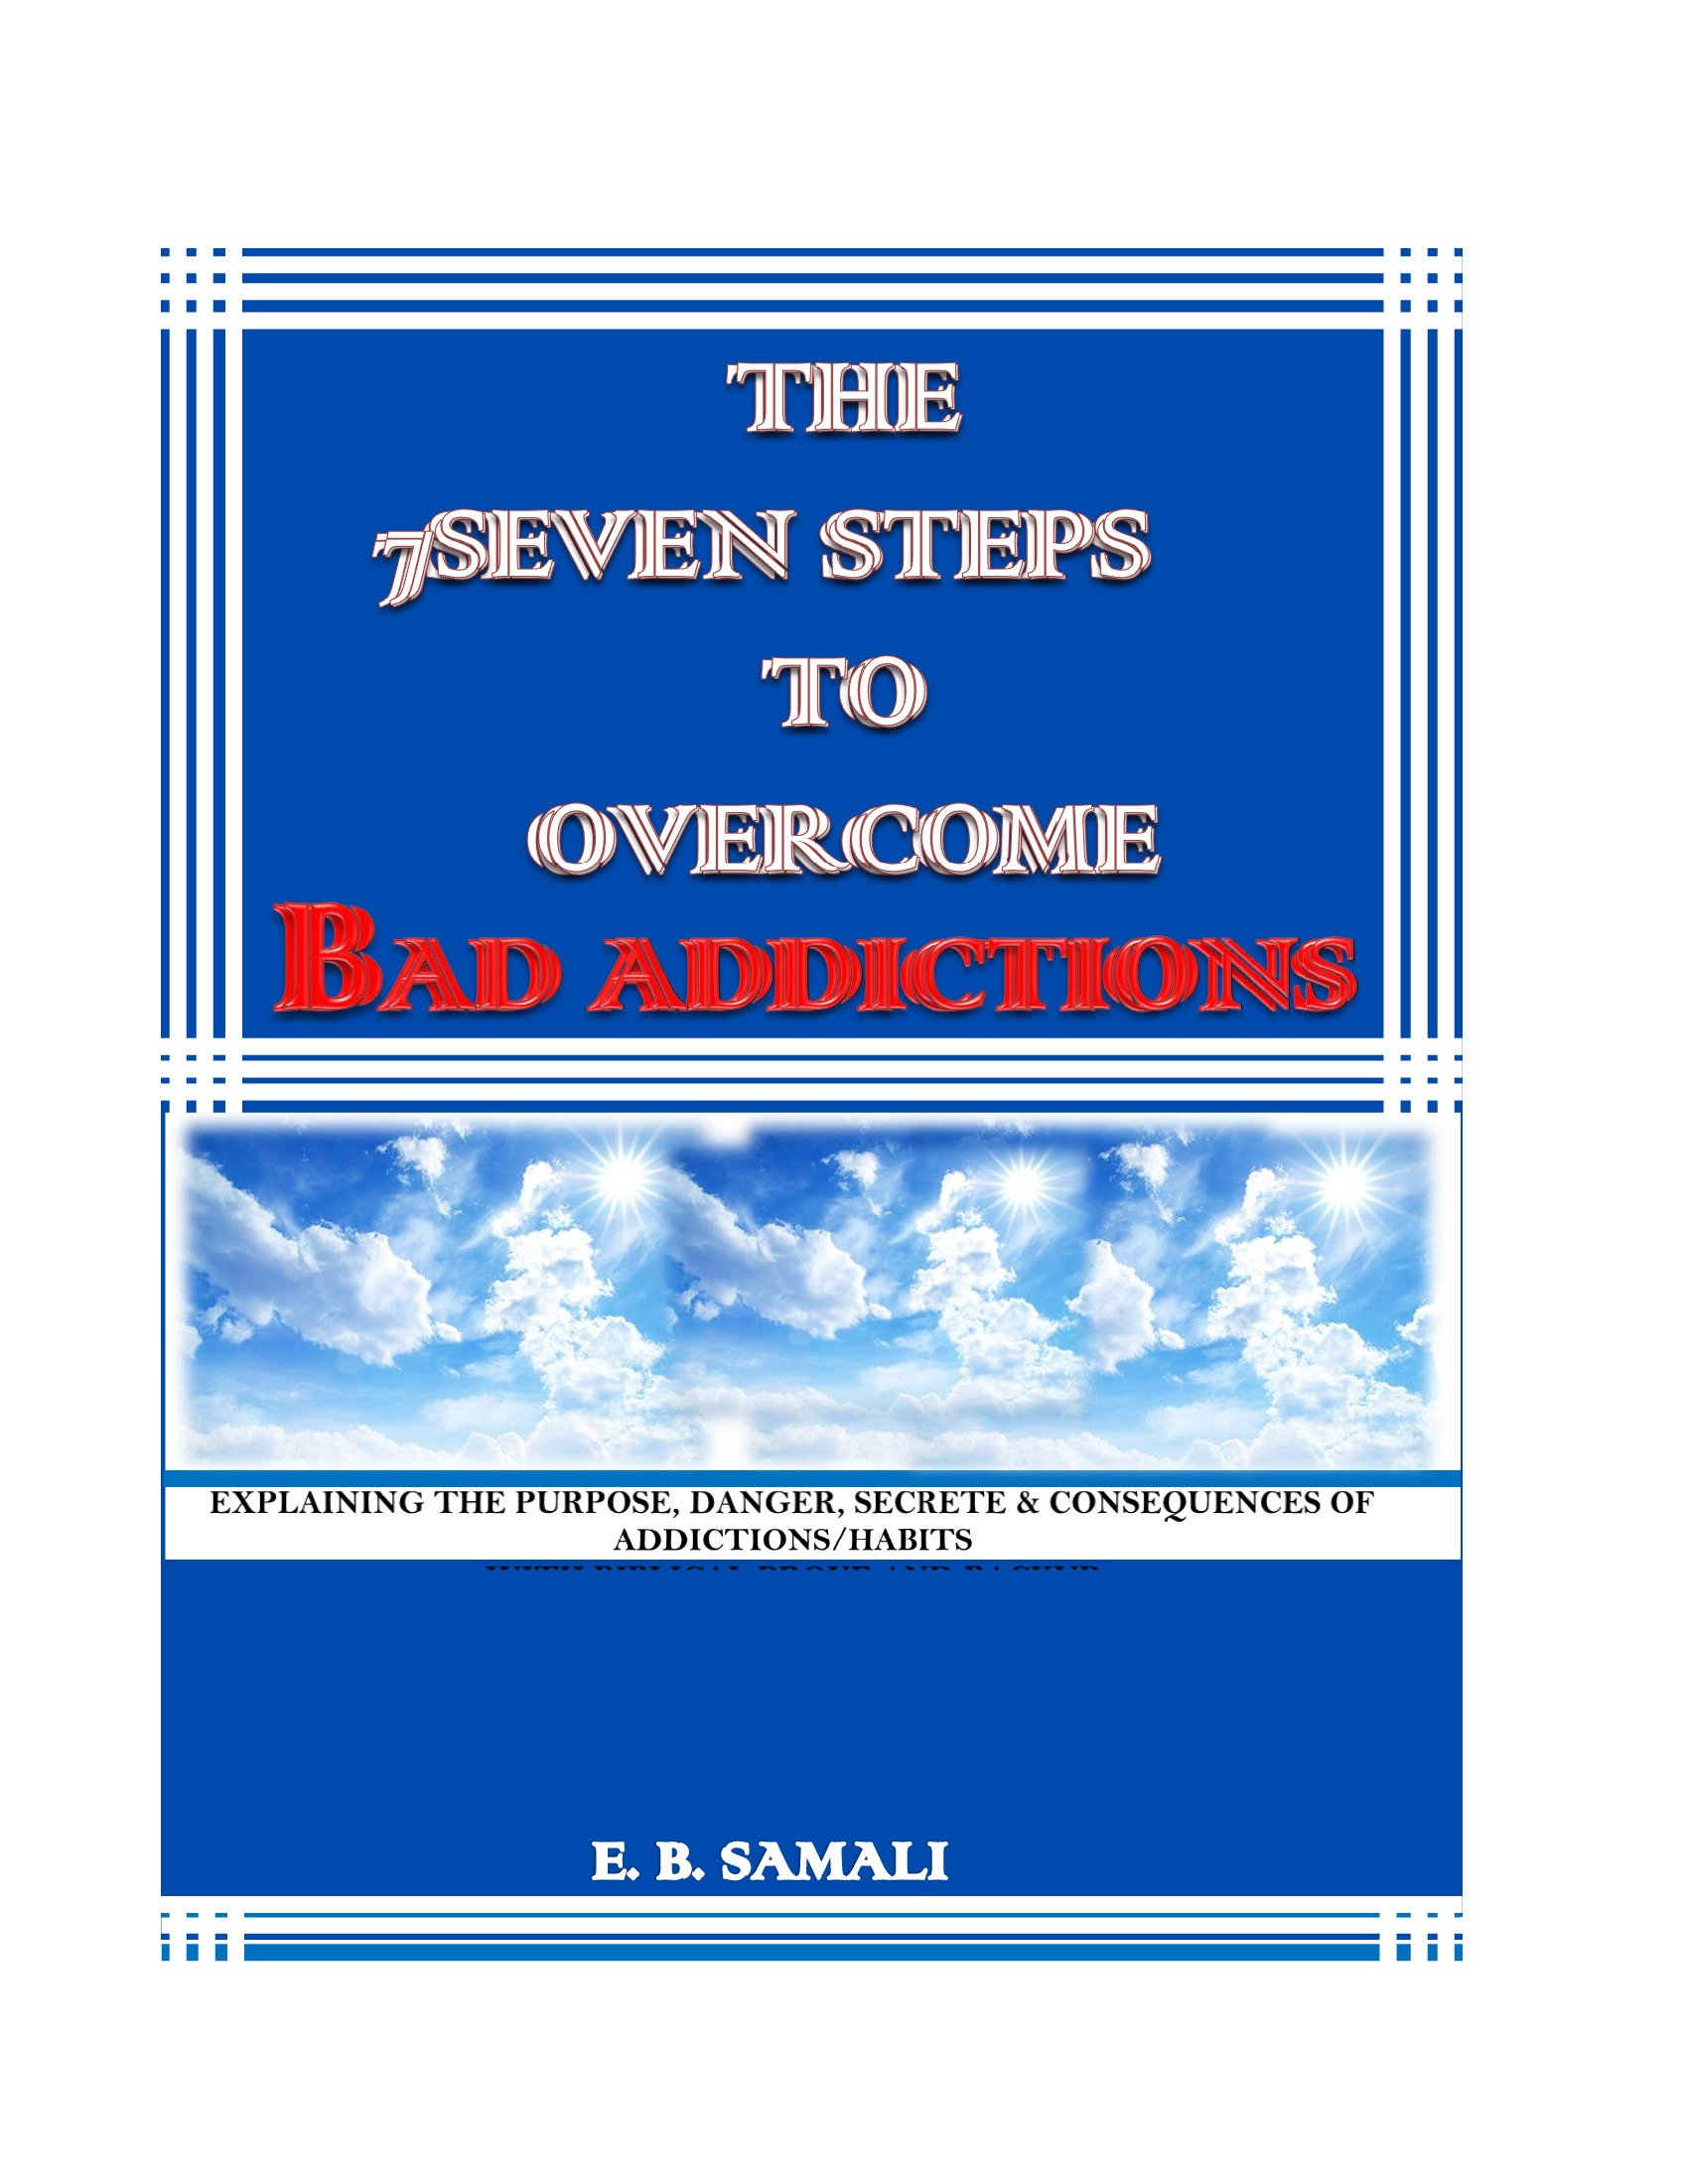 THE 7SEVEN STEPS TO OVERCOME BAD ADDICTION